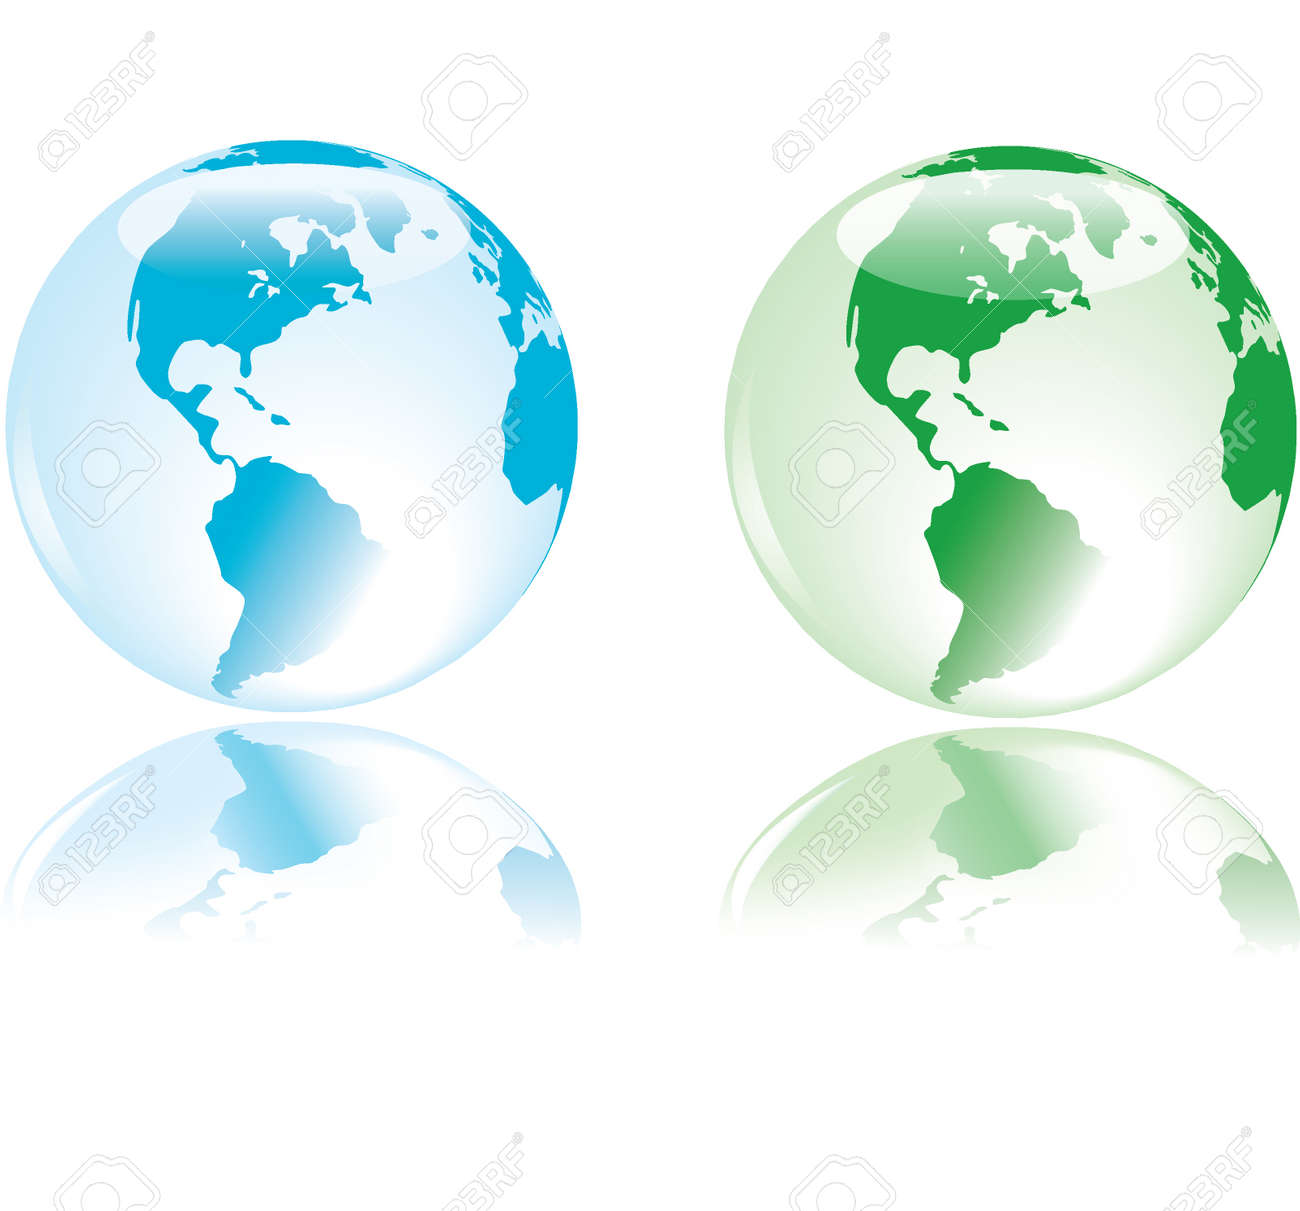 Glass like earth with delicate reflection, in colors representing the four elements - water, fire, land, air Stock Vector - 3574615